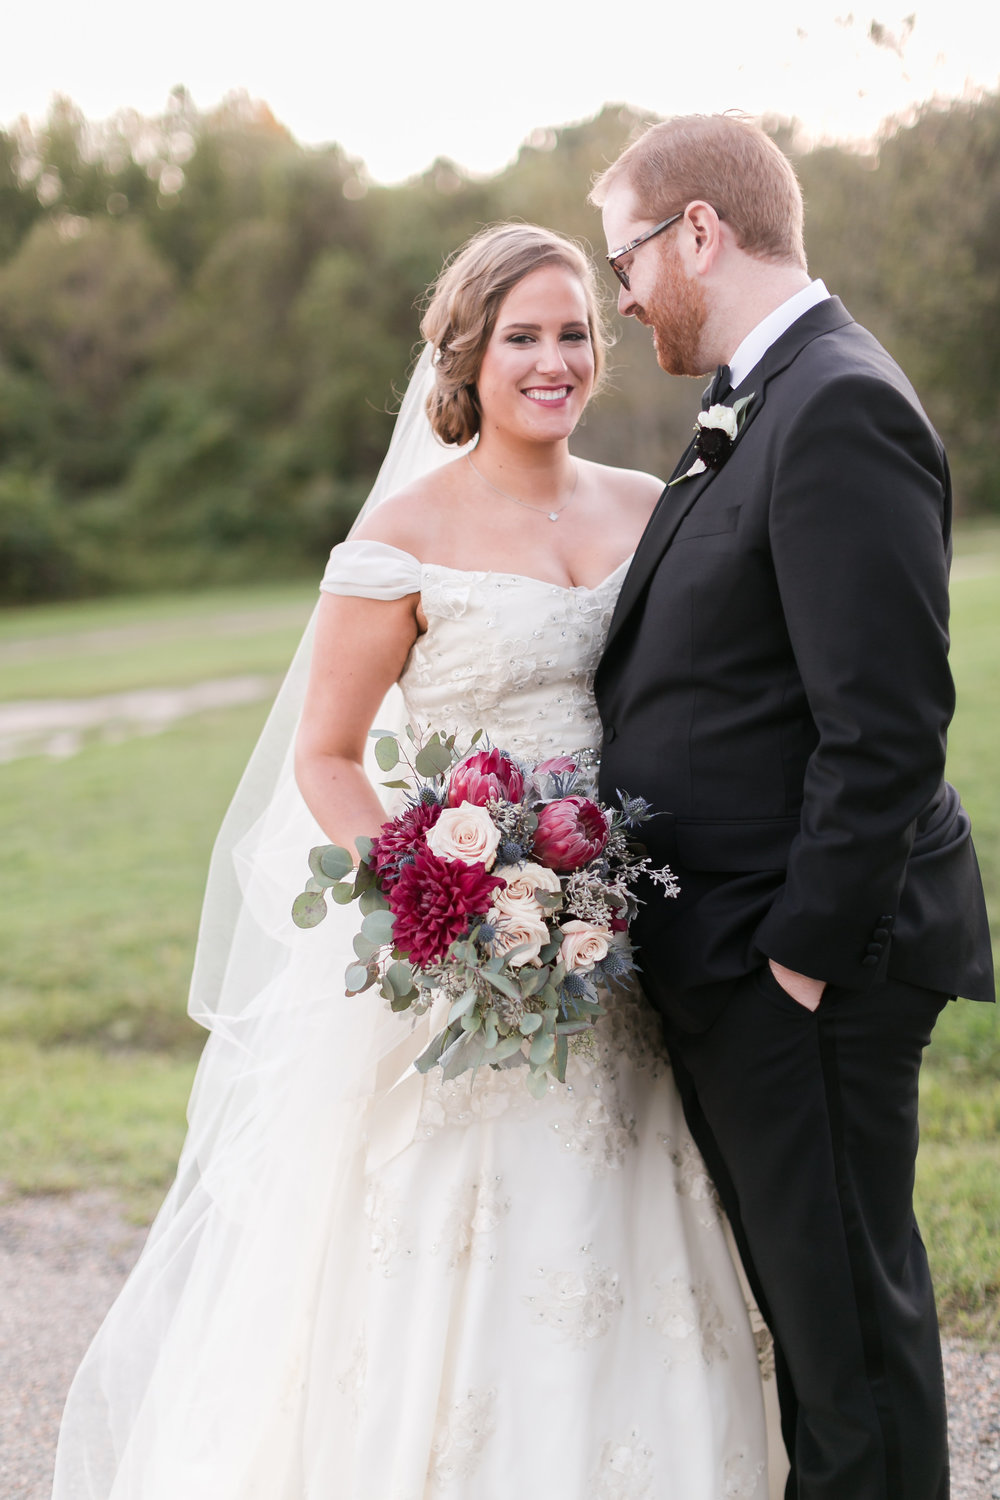 To see more images, click here: Leanne & Phill - Williamsburg, Virginia Wedding